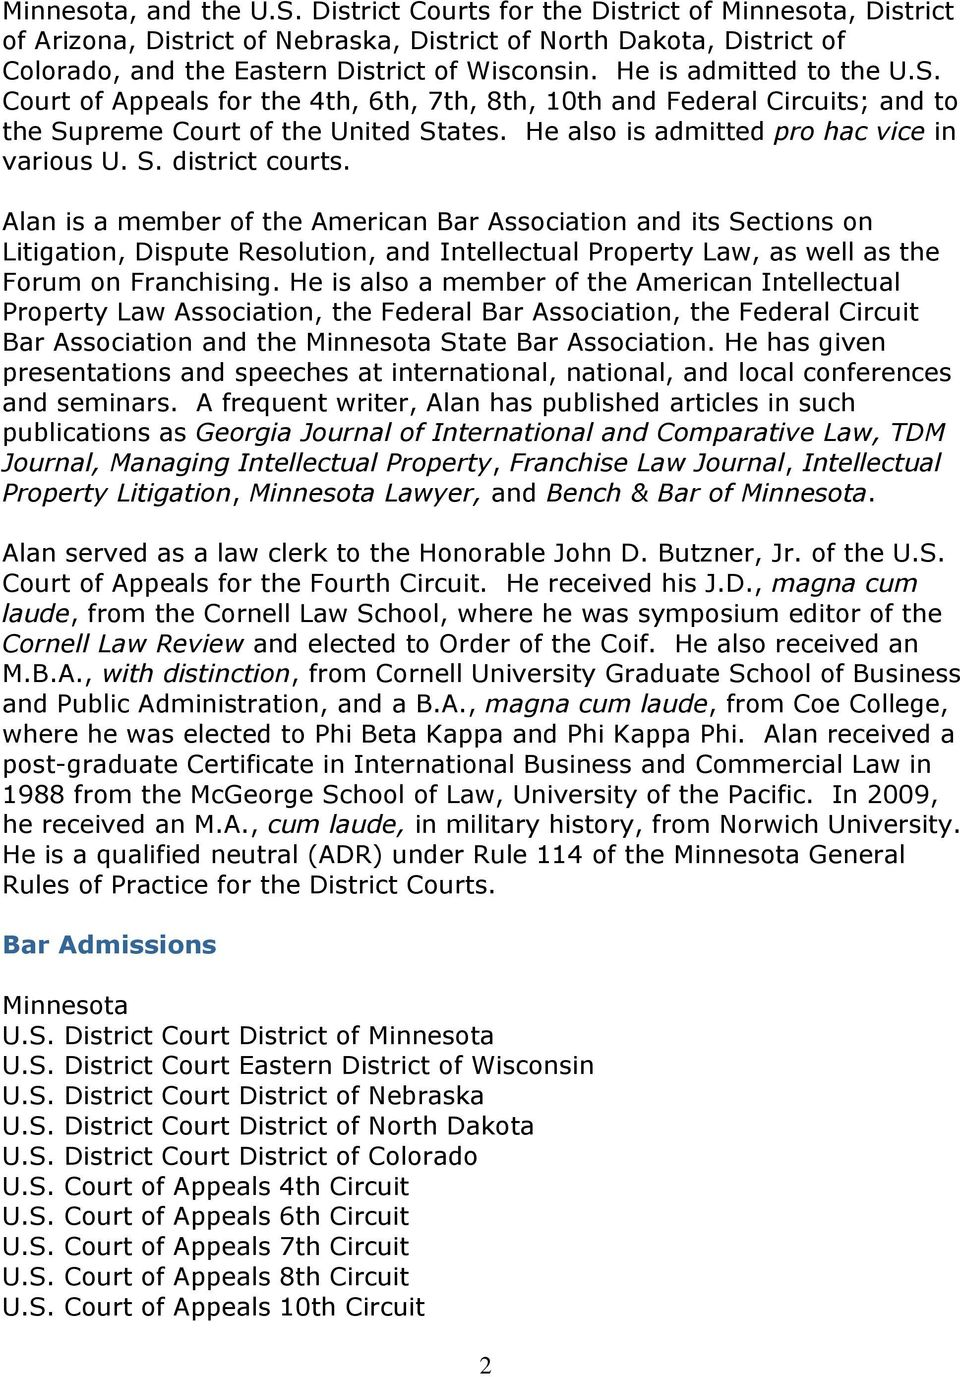 Alan is a member of the American Bar Association and its Sections on Litigation, Dispute Resolution, and Intellectual Property Law, as well as the Forum on Franchising.